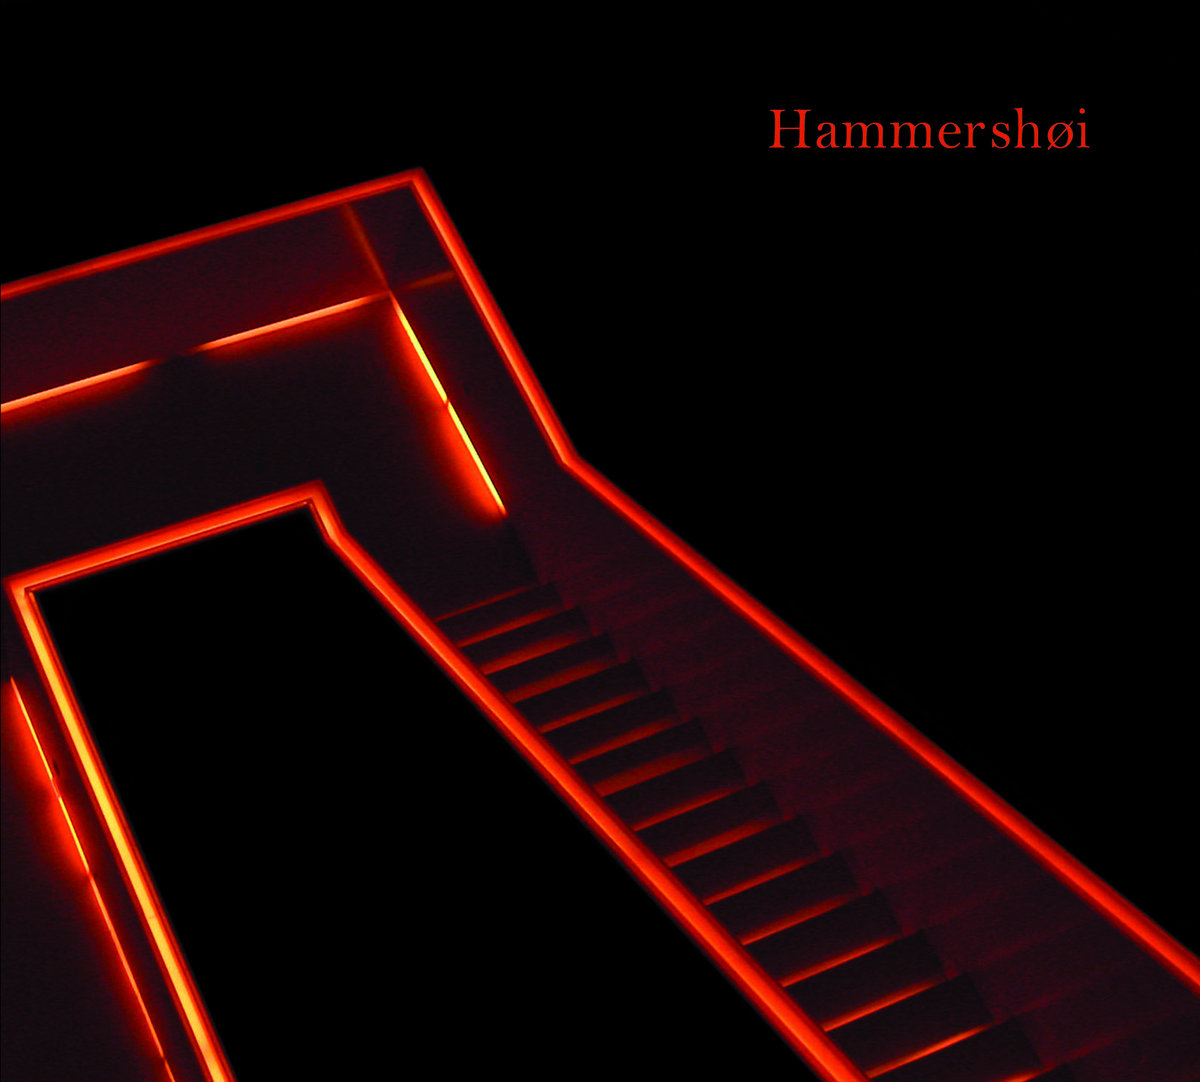 Hammershoi cover